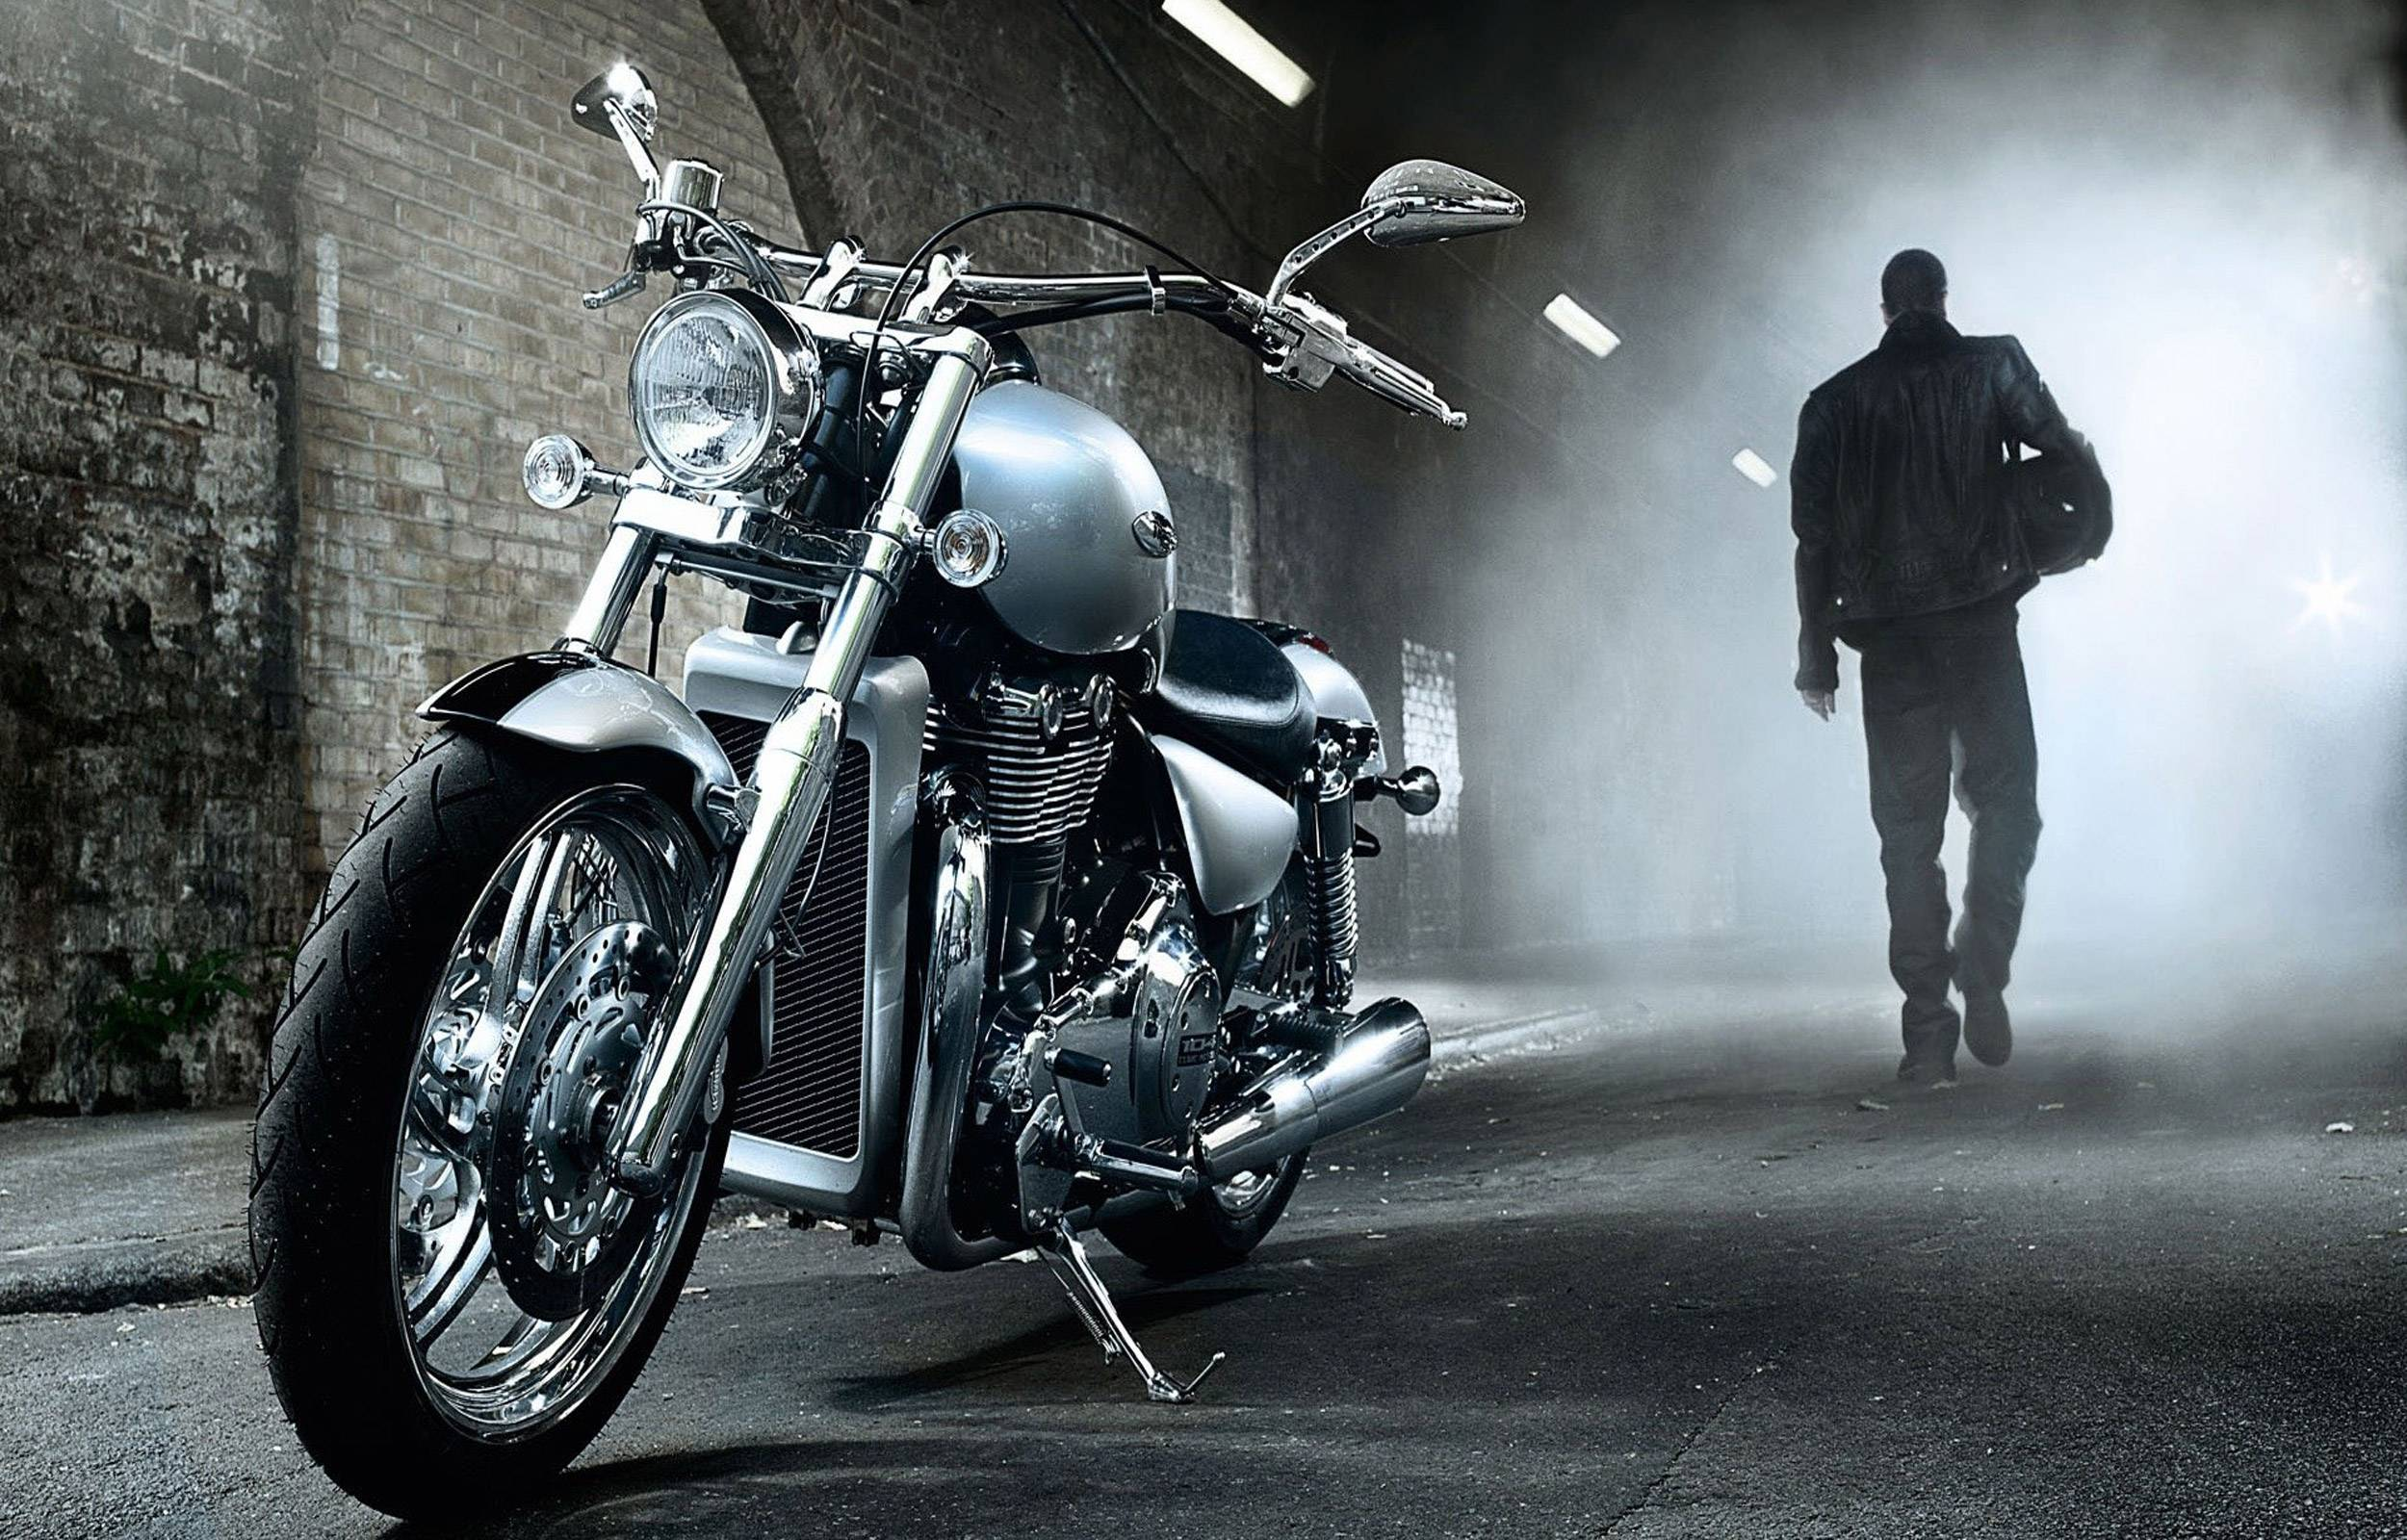 High Resolution Wallpaper | Harley Davidson 2500x1600 px